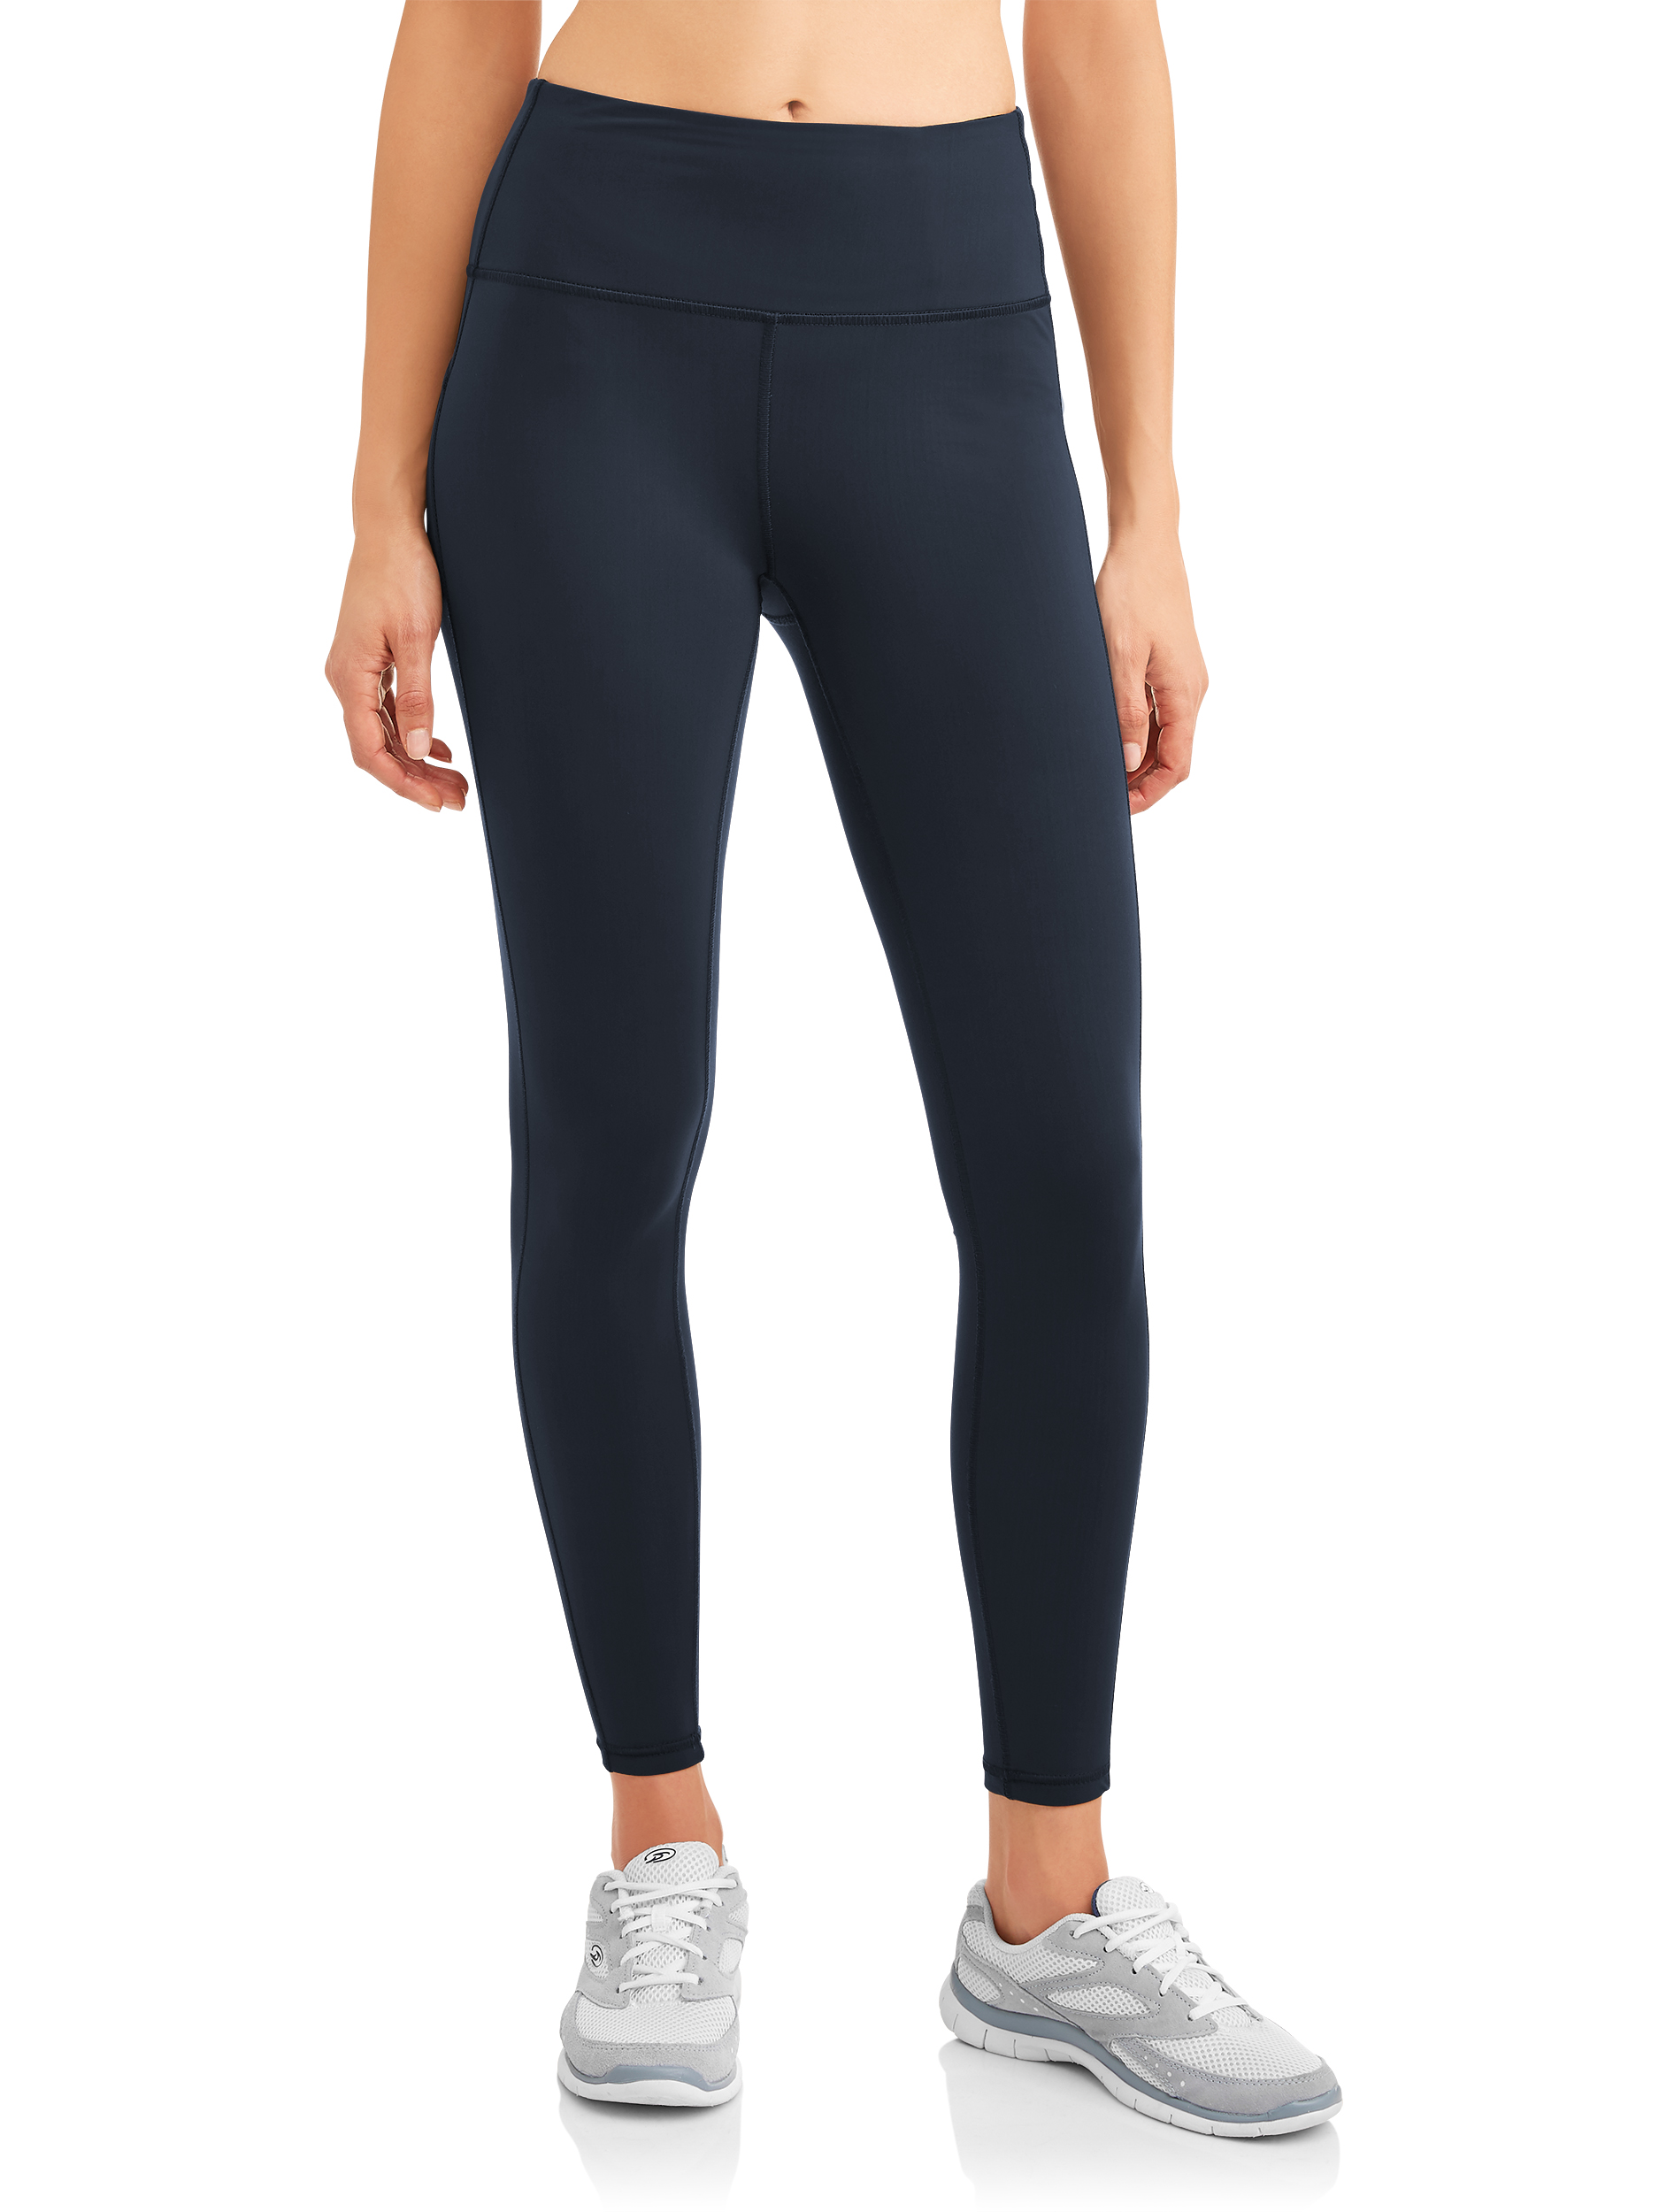 "Women's Active 27"" Inseam Sleek and Sueded Legging"